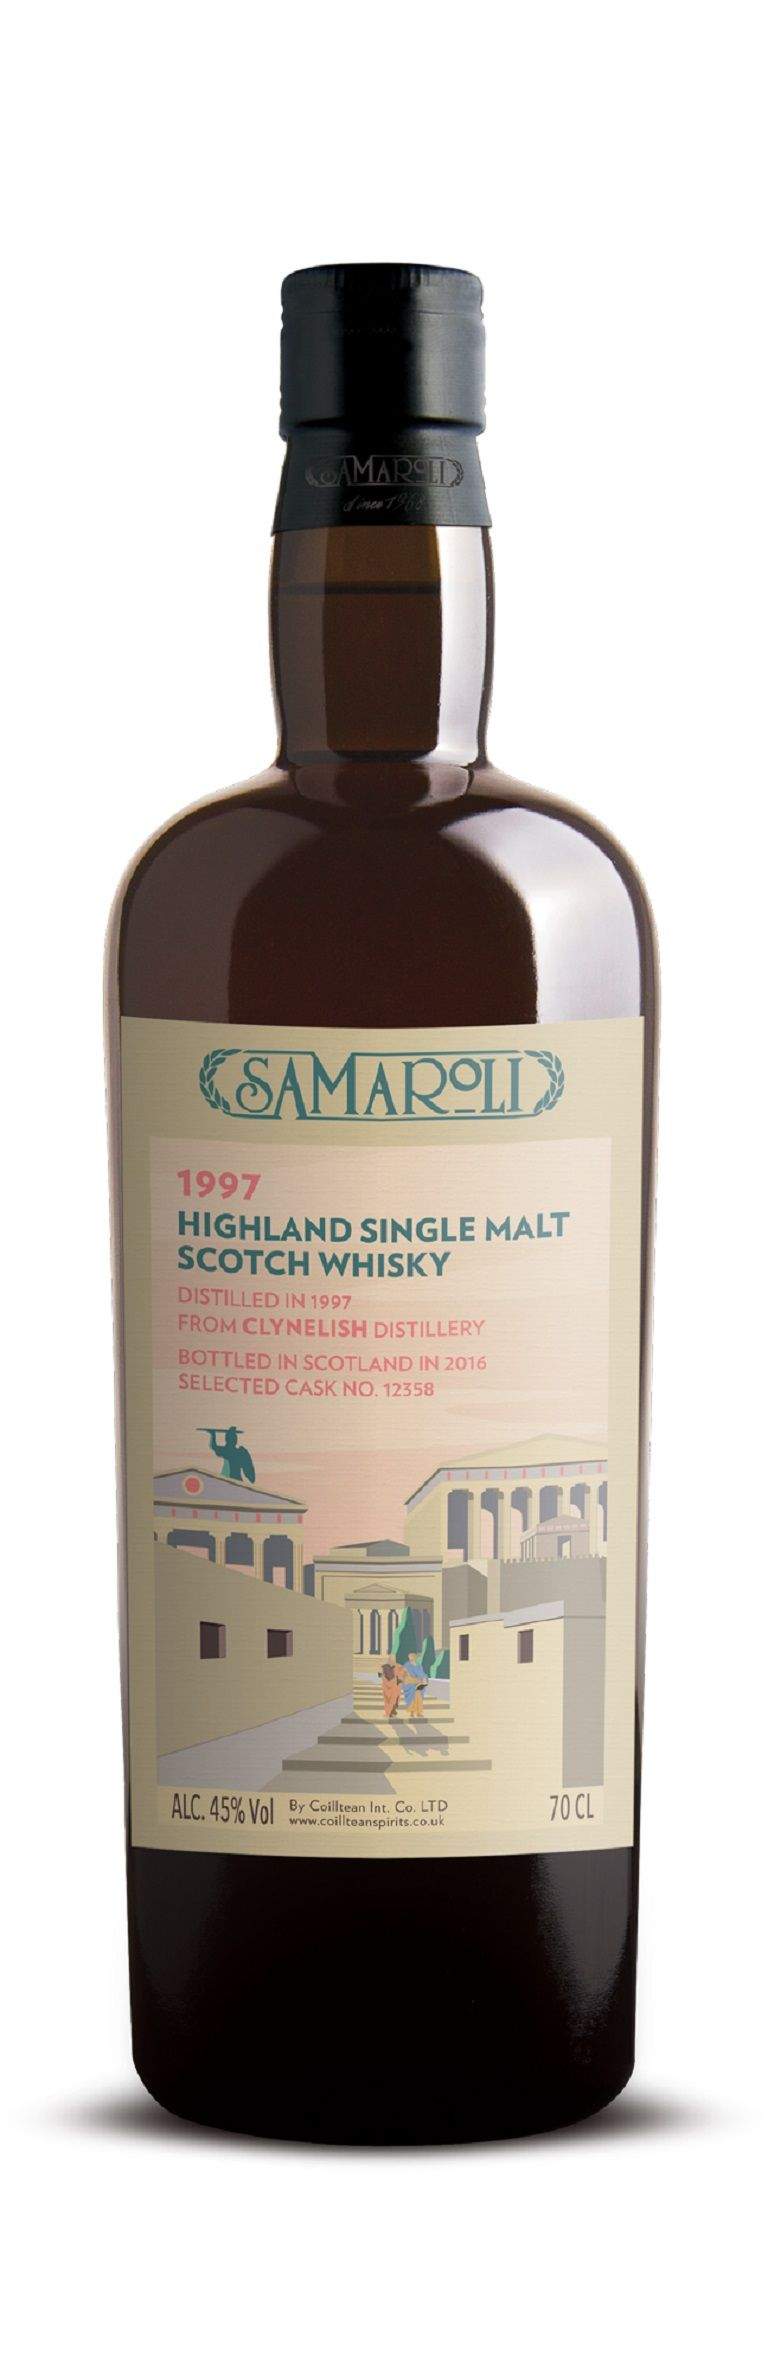 1997 Clynelish - Highland Single Malt Scotch Whisky - ed. 2016 - 70 cl